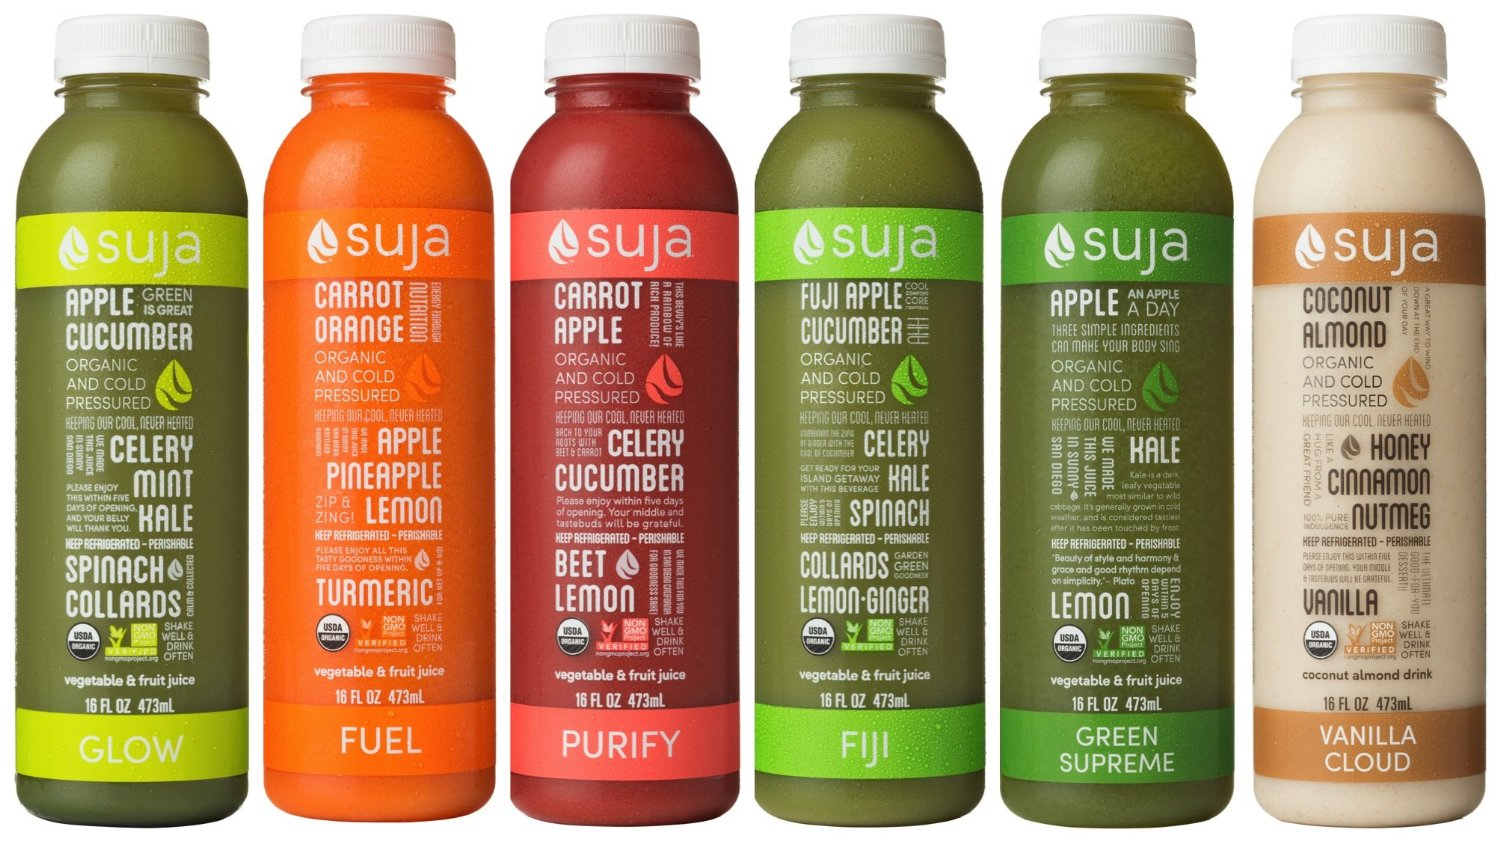 Education not medication cold pressed juice i have found suja cold pressed juice at target for 3 malvernweather Images